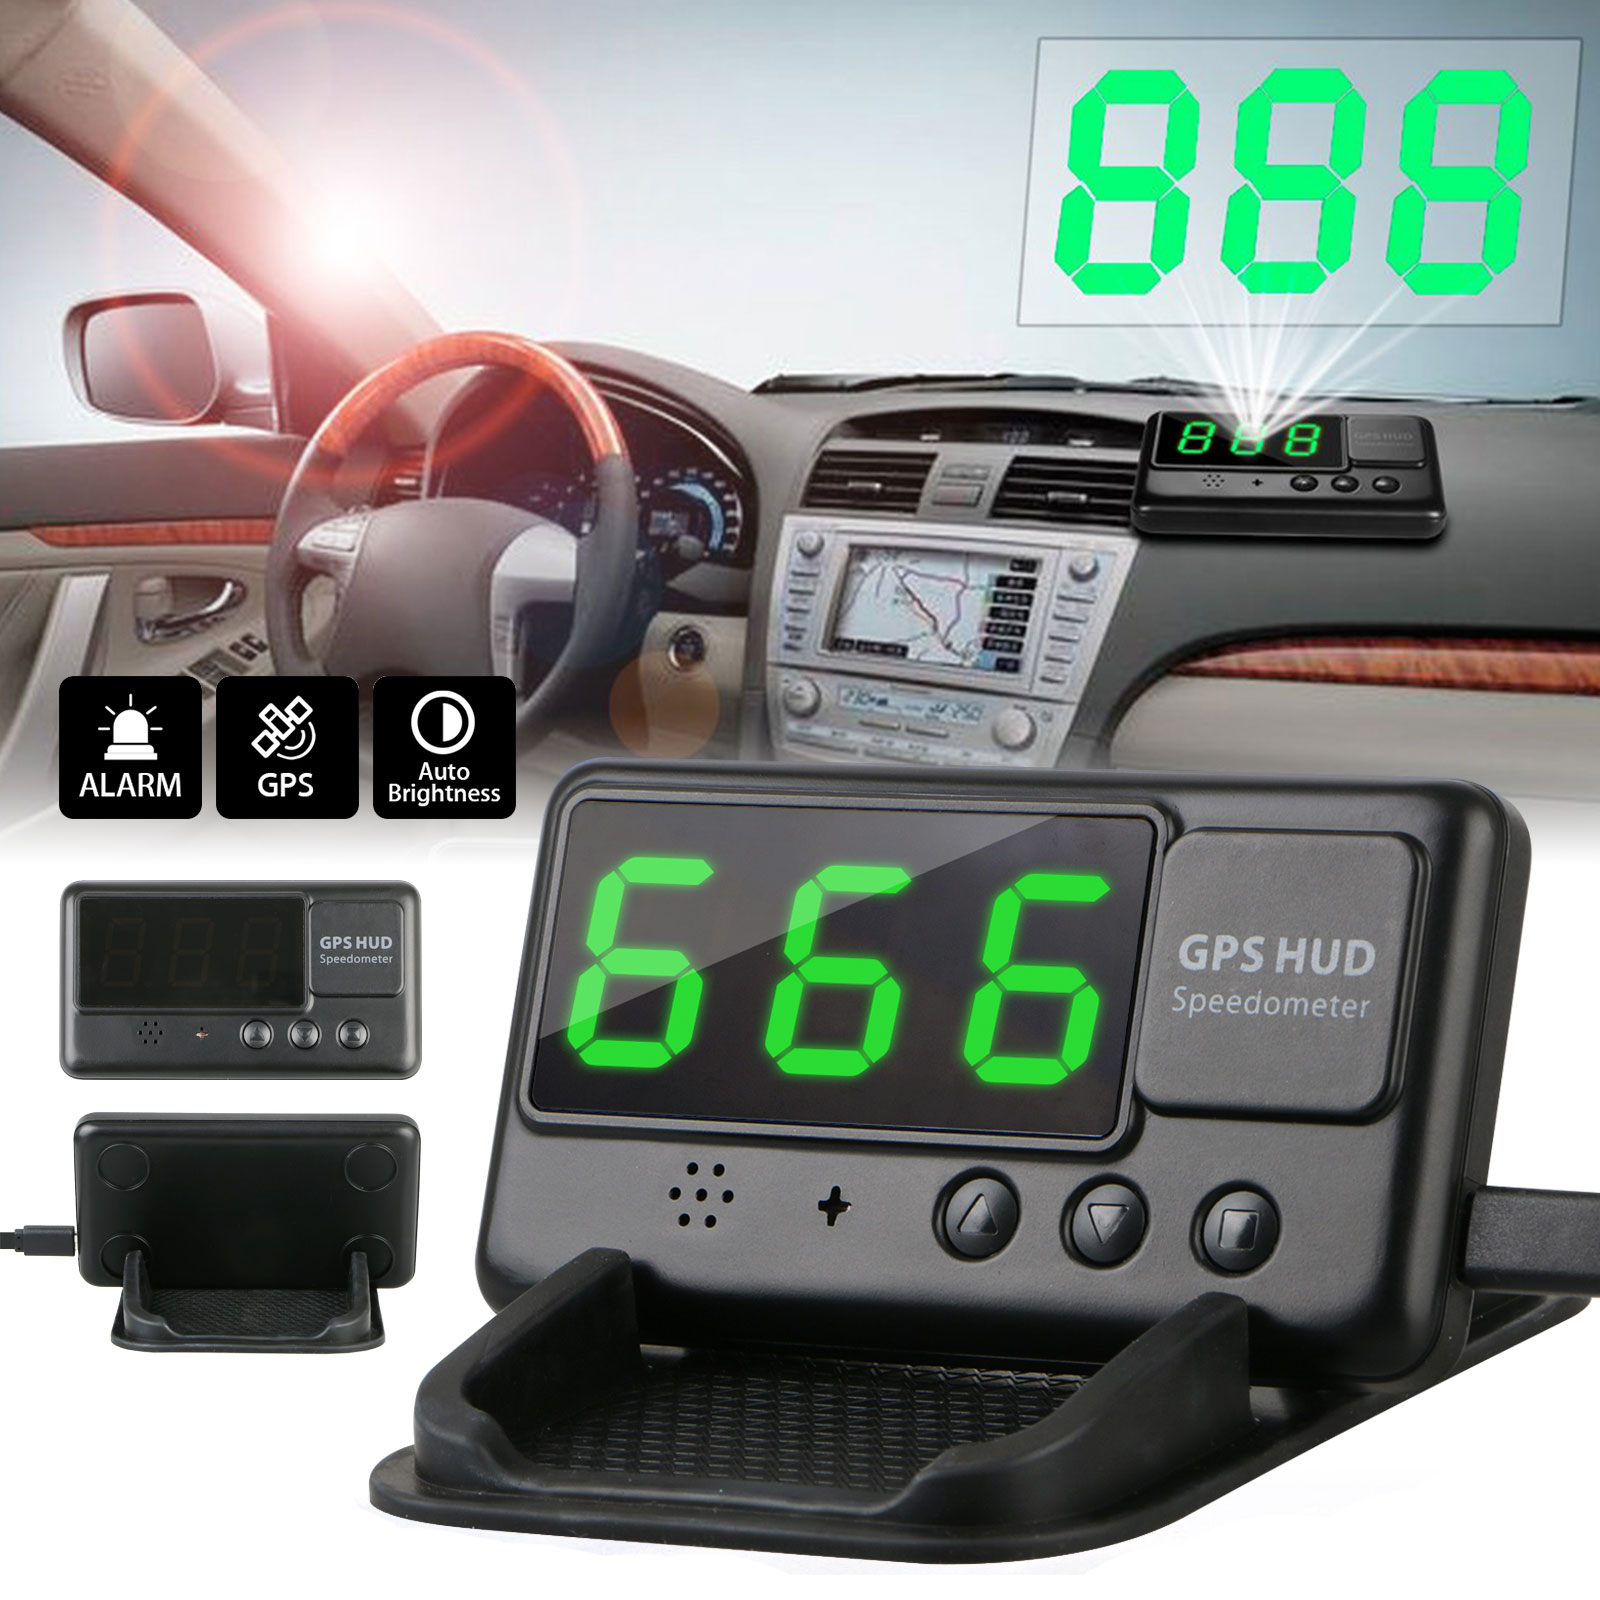 Universal Digital Car GPS Speedometer HUD Head Up Display MPH/KM Overspeed Alarm